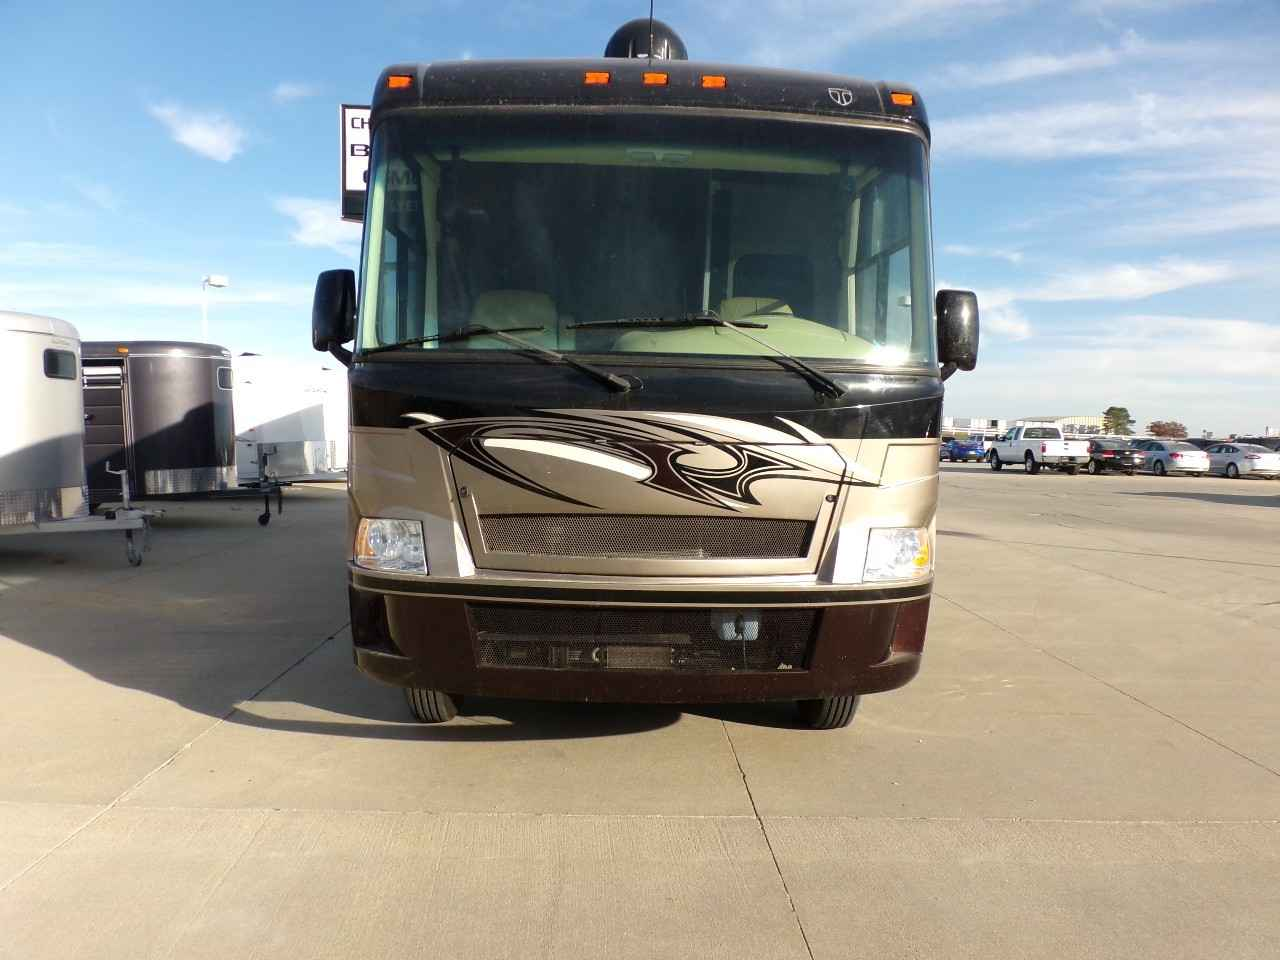 2013 used thor motor coach outlaw 3611 toy hauler in for 2013 thor motor coach